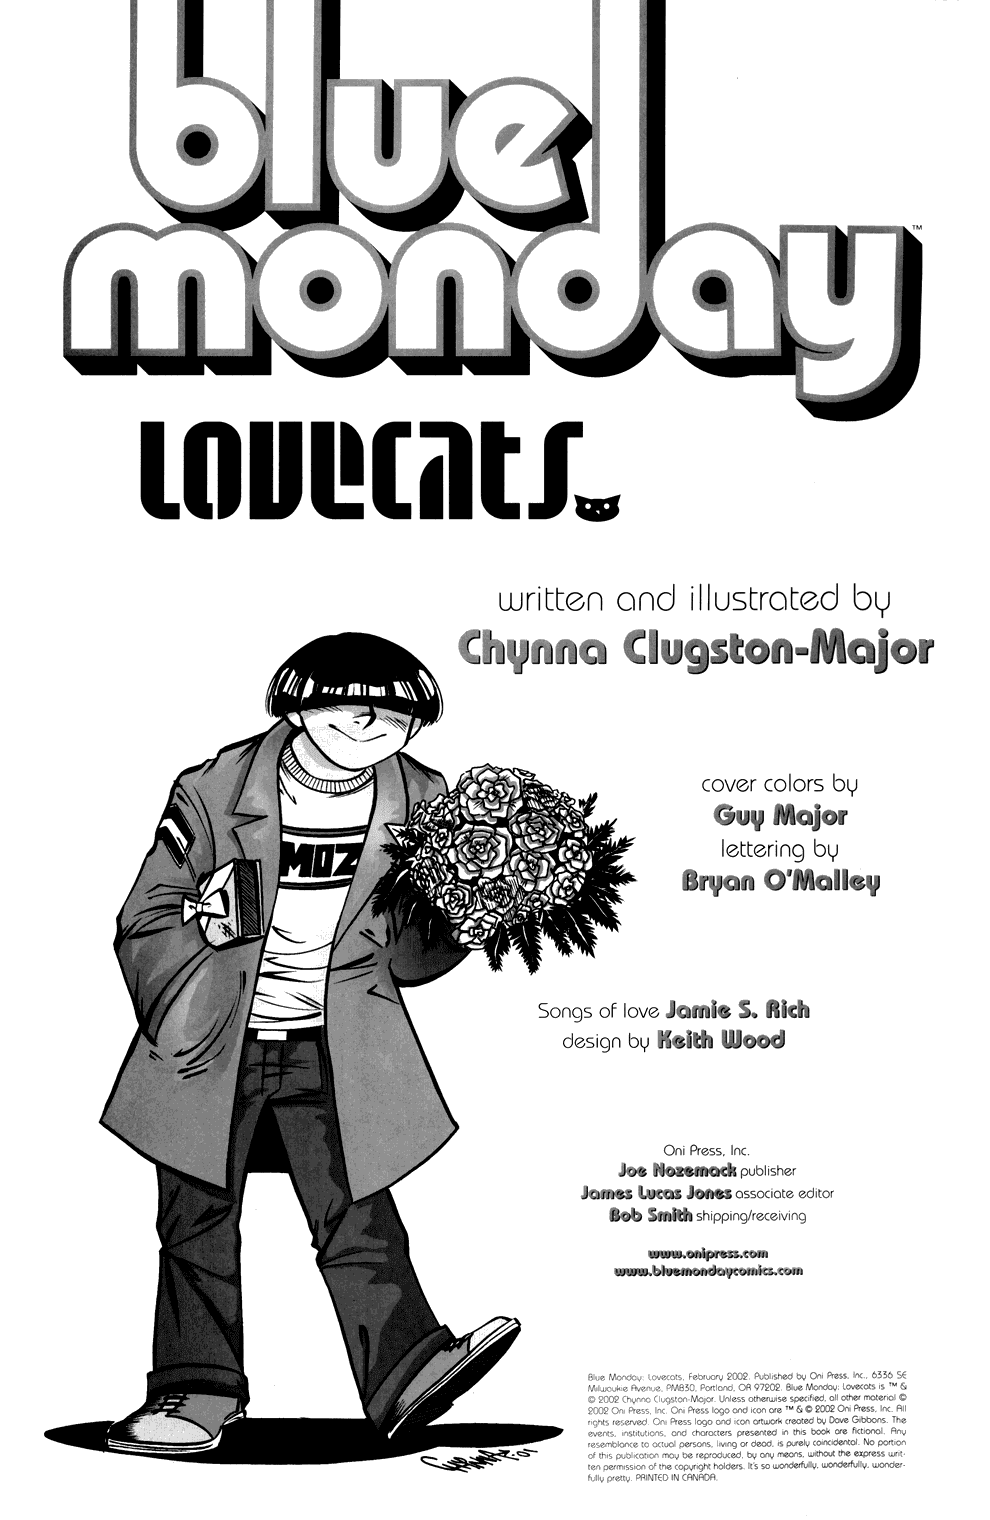 Read online Blue Monday: Lovecats comic -  Issue # Full - 2